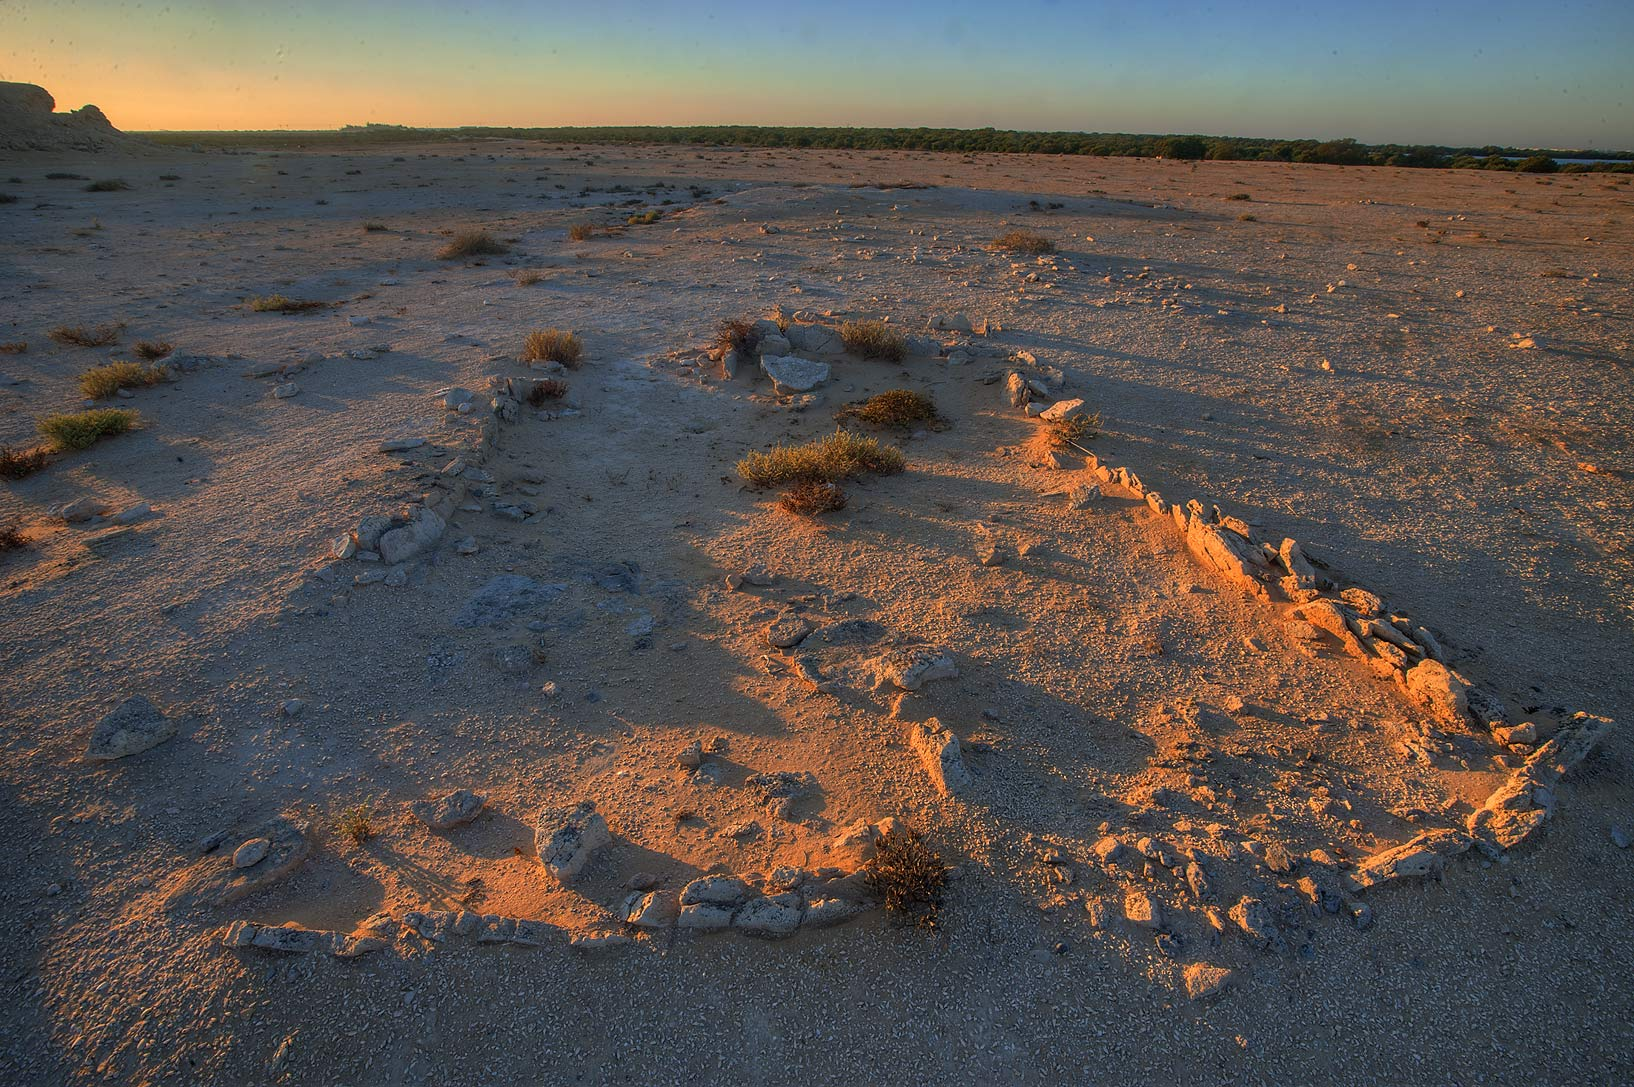 Archeological excavations on Purple Island (Jazirat Bin Ghanim) at sunrise. Al Khor, Qatar